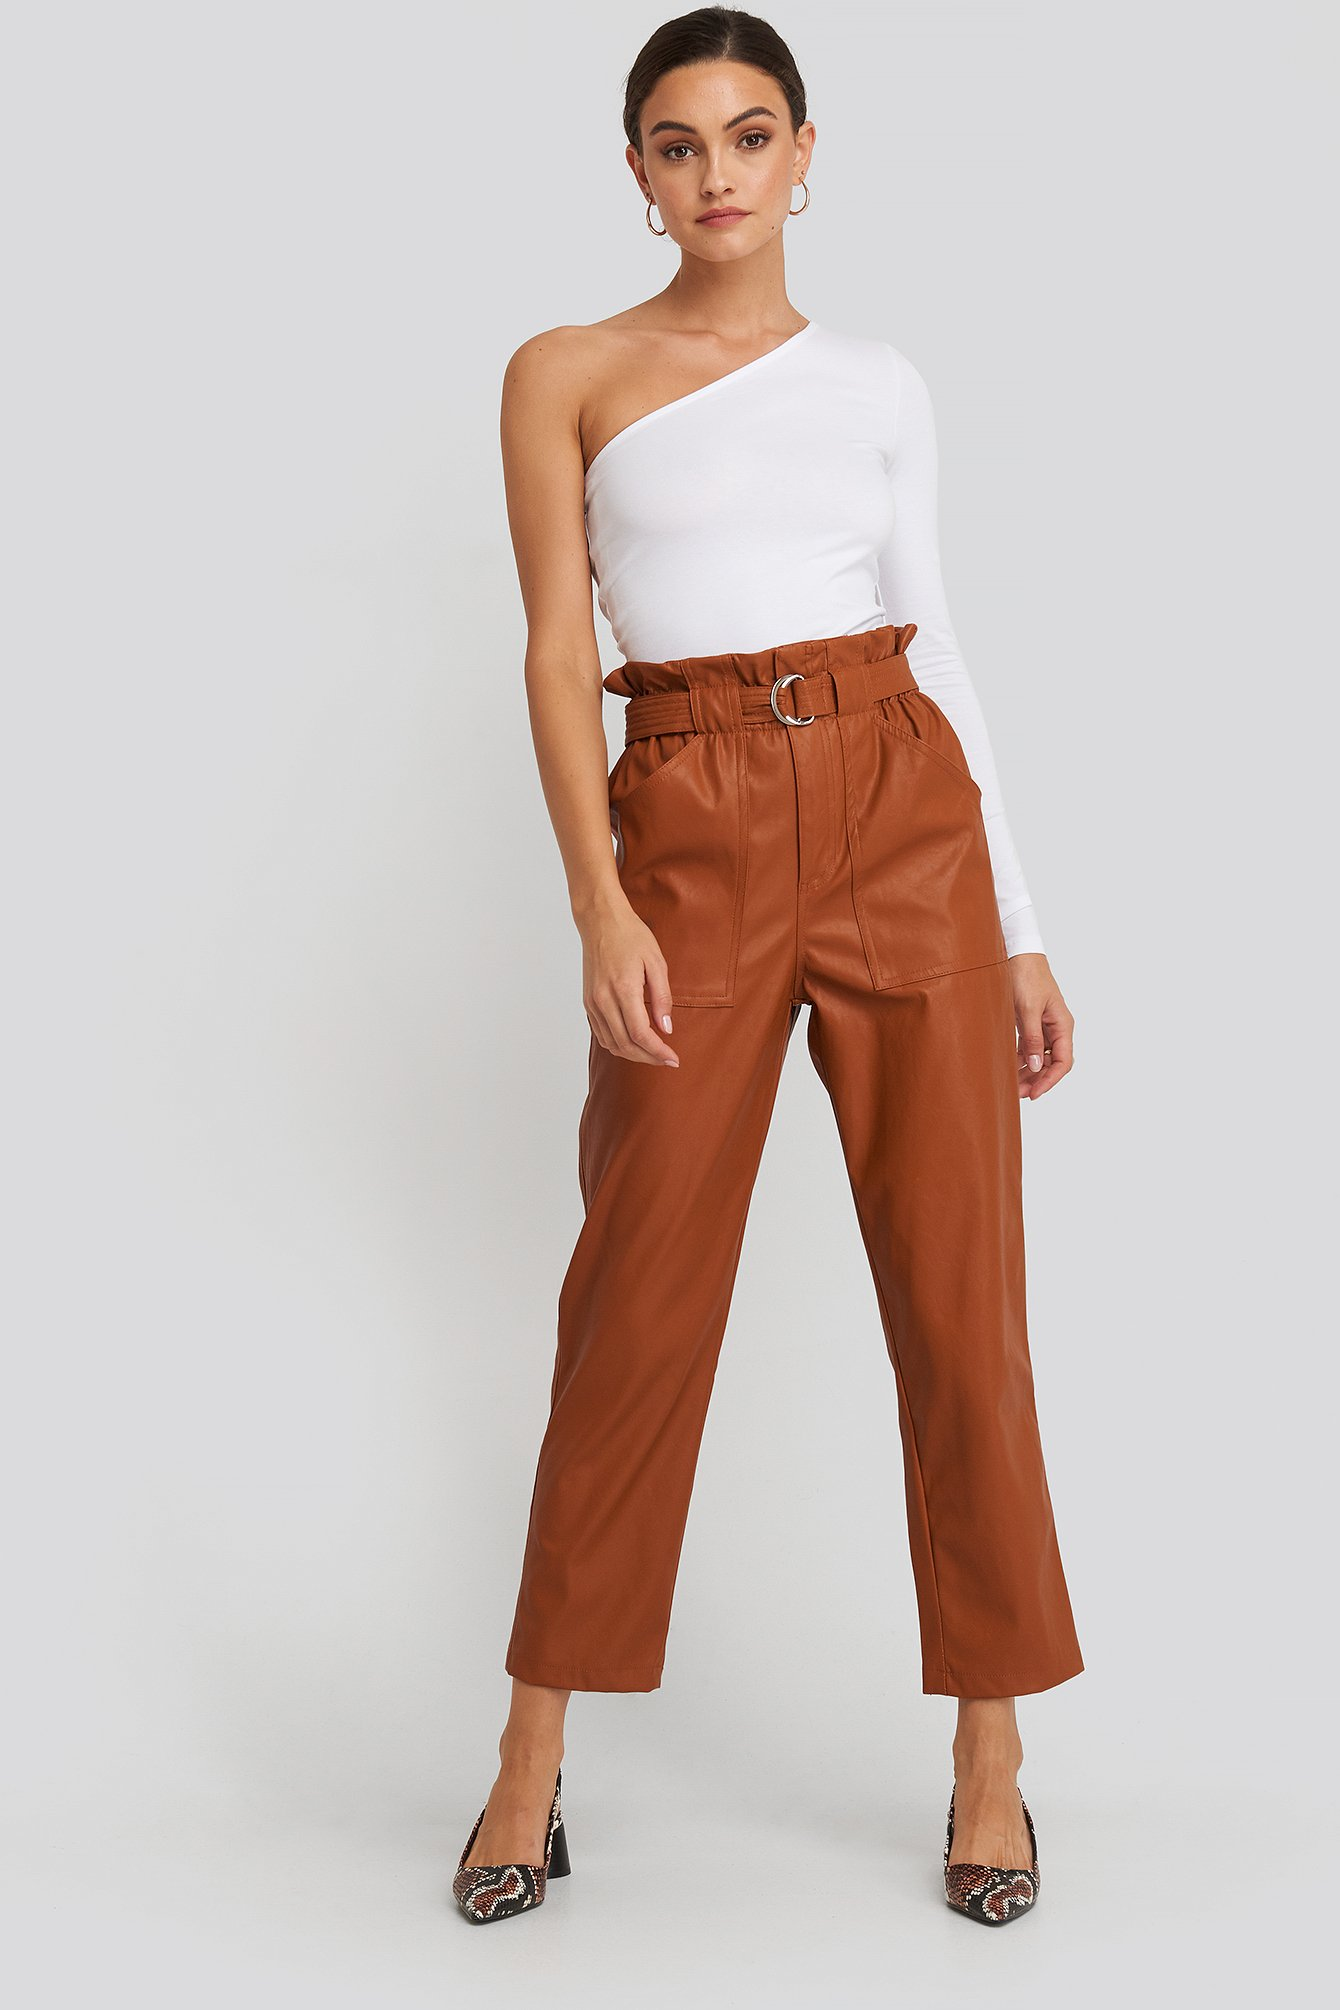 Tied Waist Pu Pants Brun by Na Kd Trend